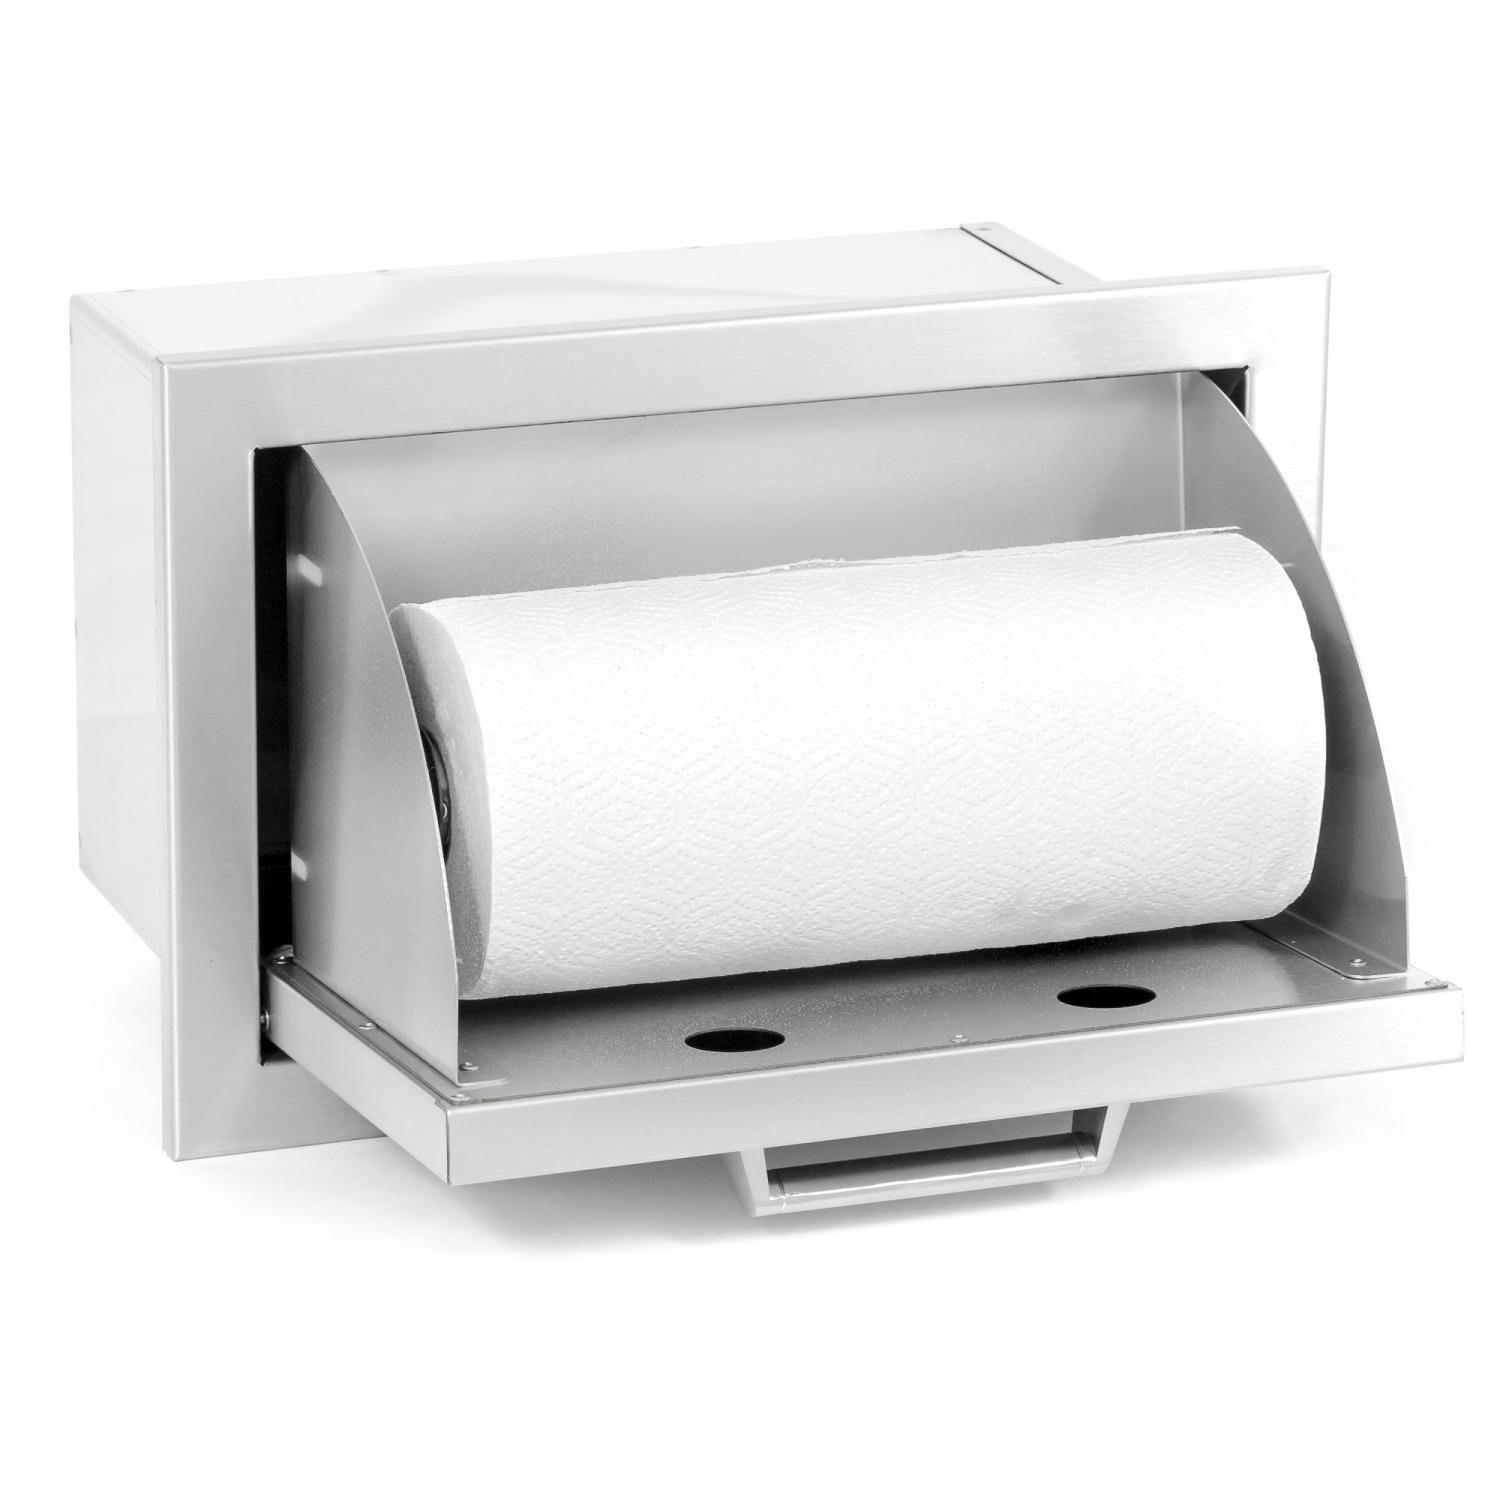 Bbqguys.com Sonoma Series 16-inch Stainless Steel Paper Towel Dispenser